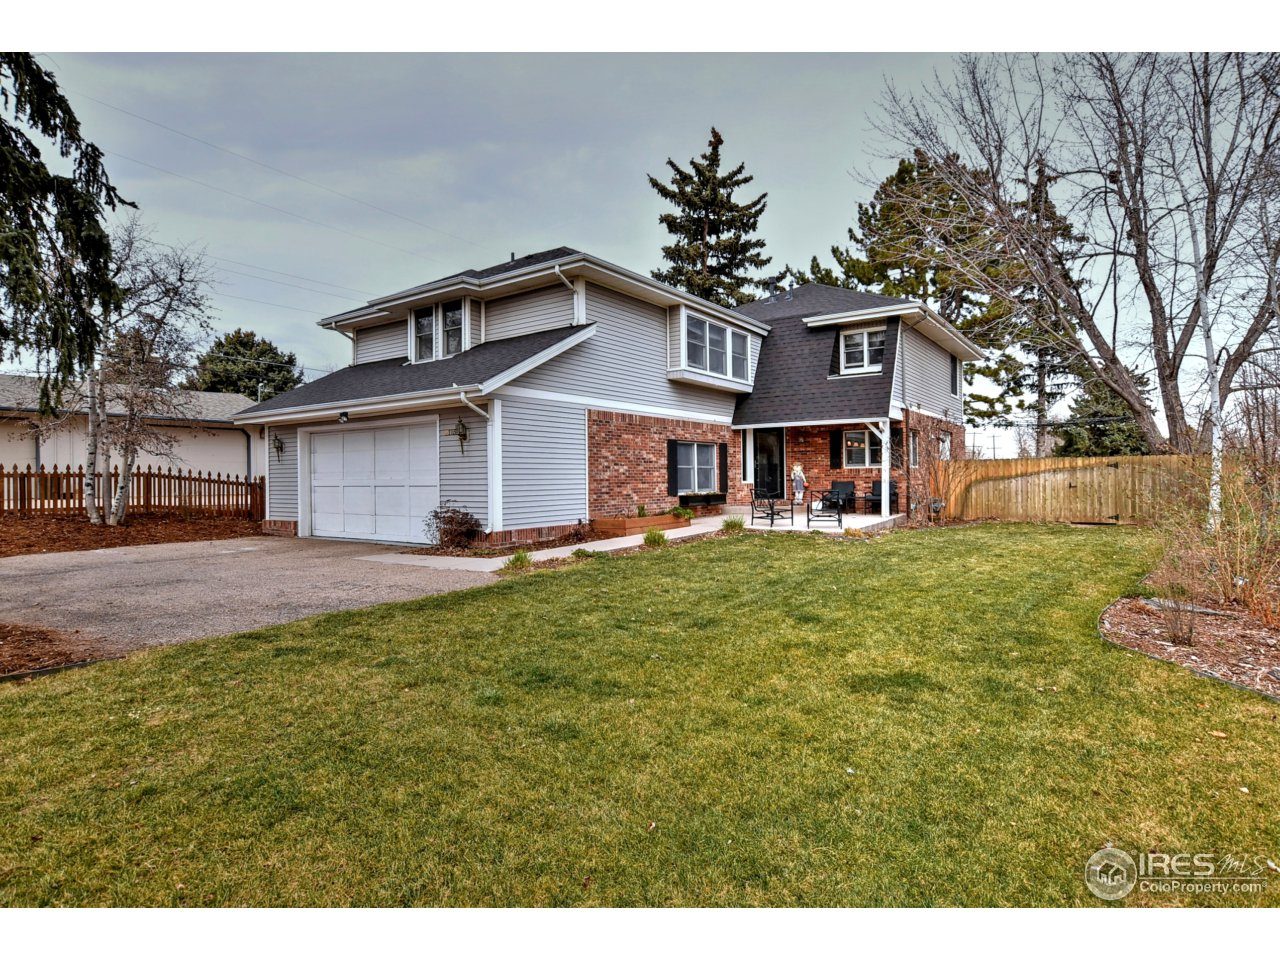 2115 18th St, Greeley CO 80631